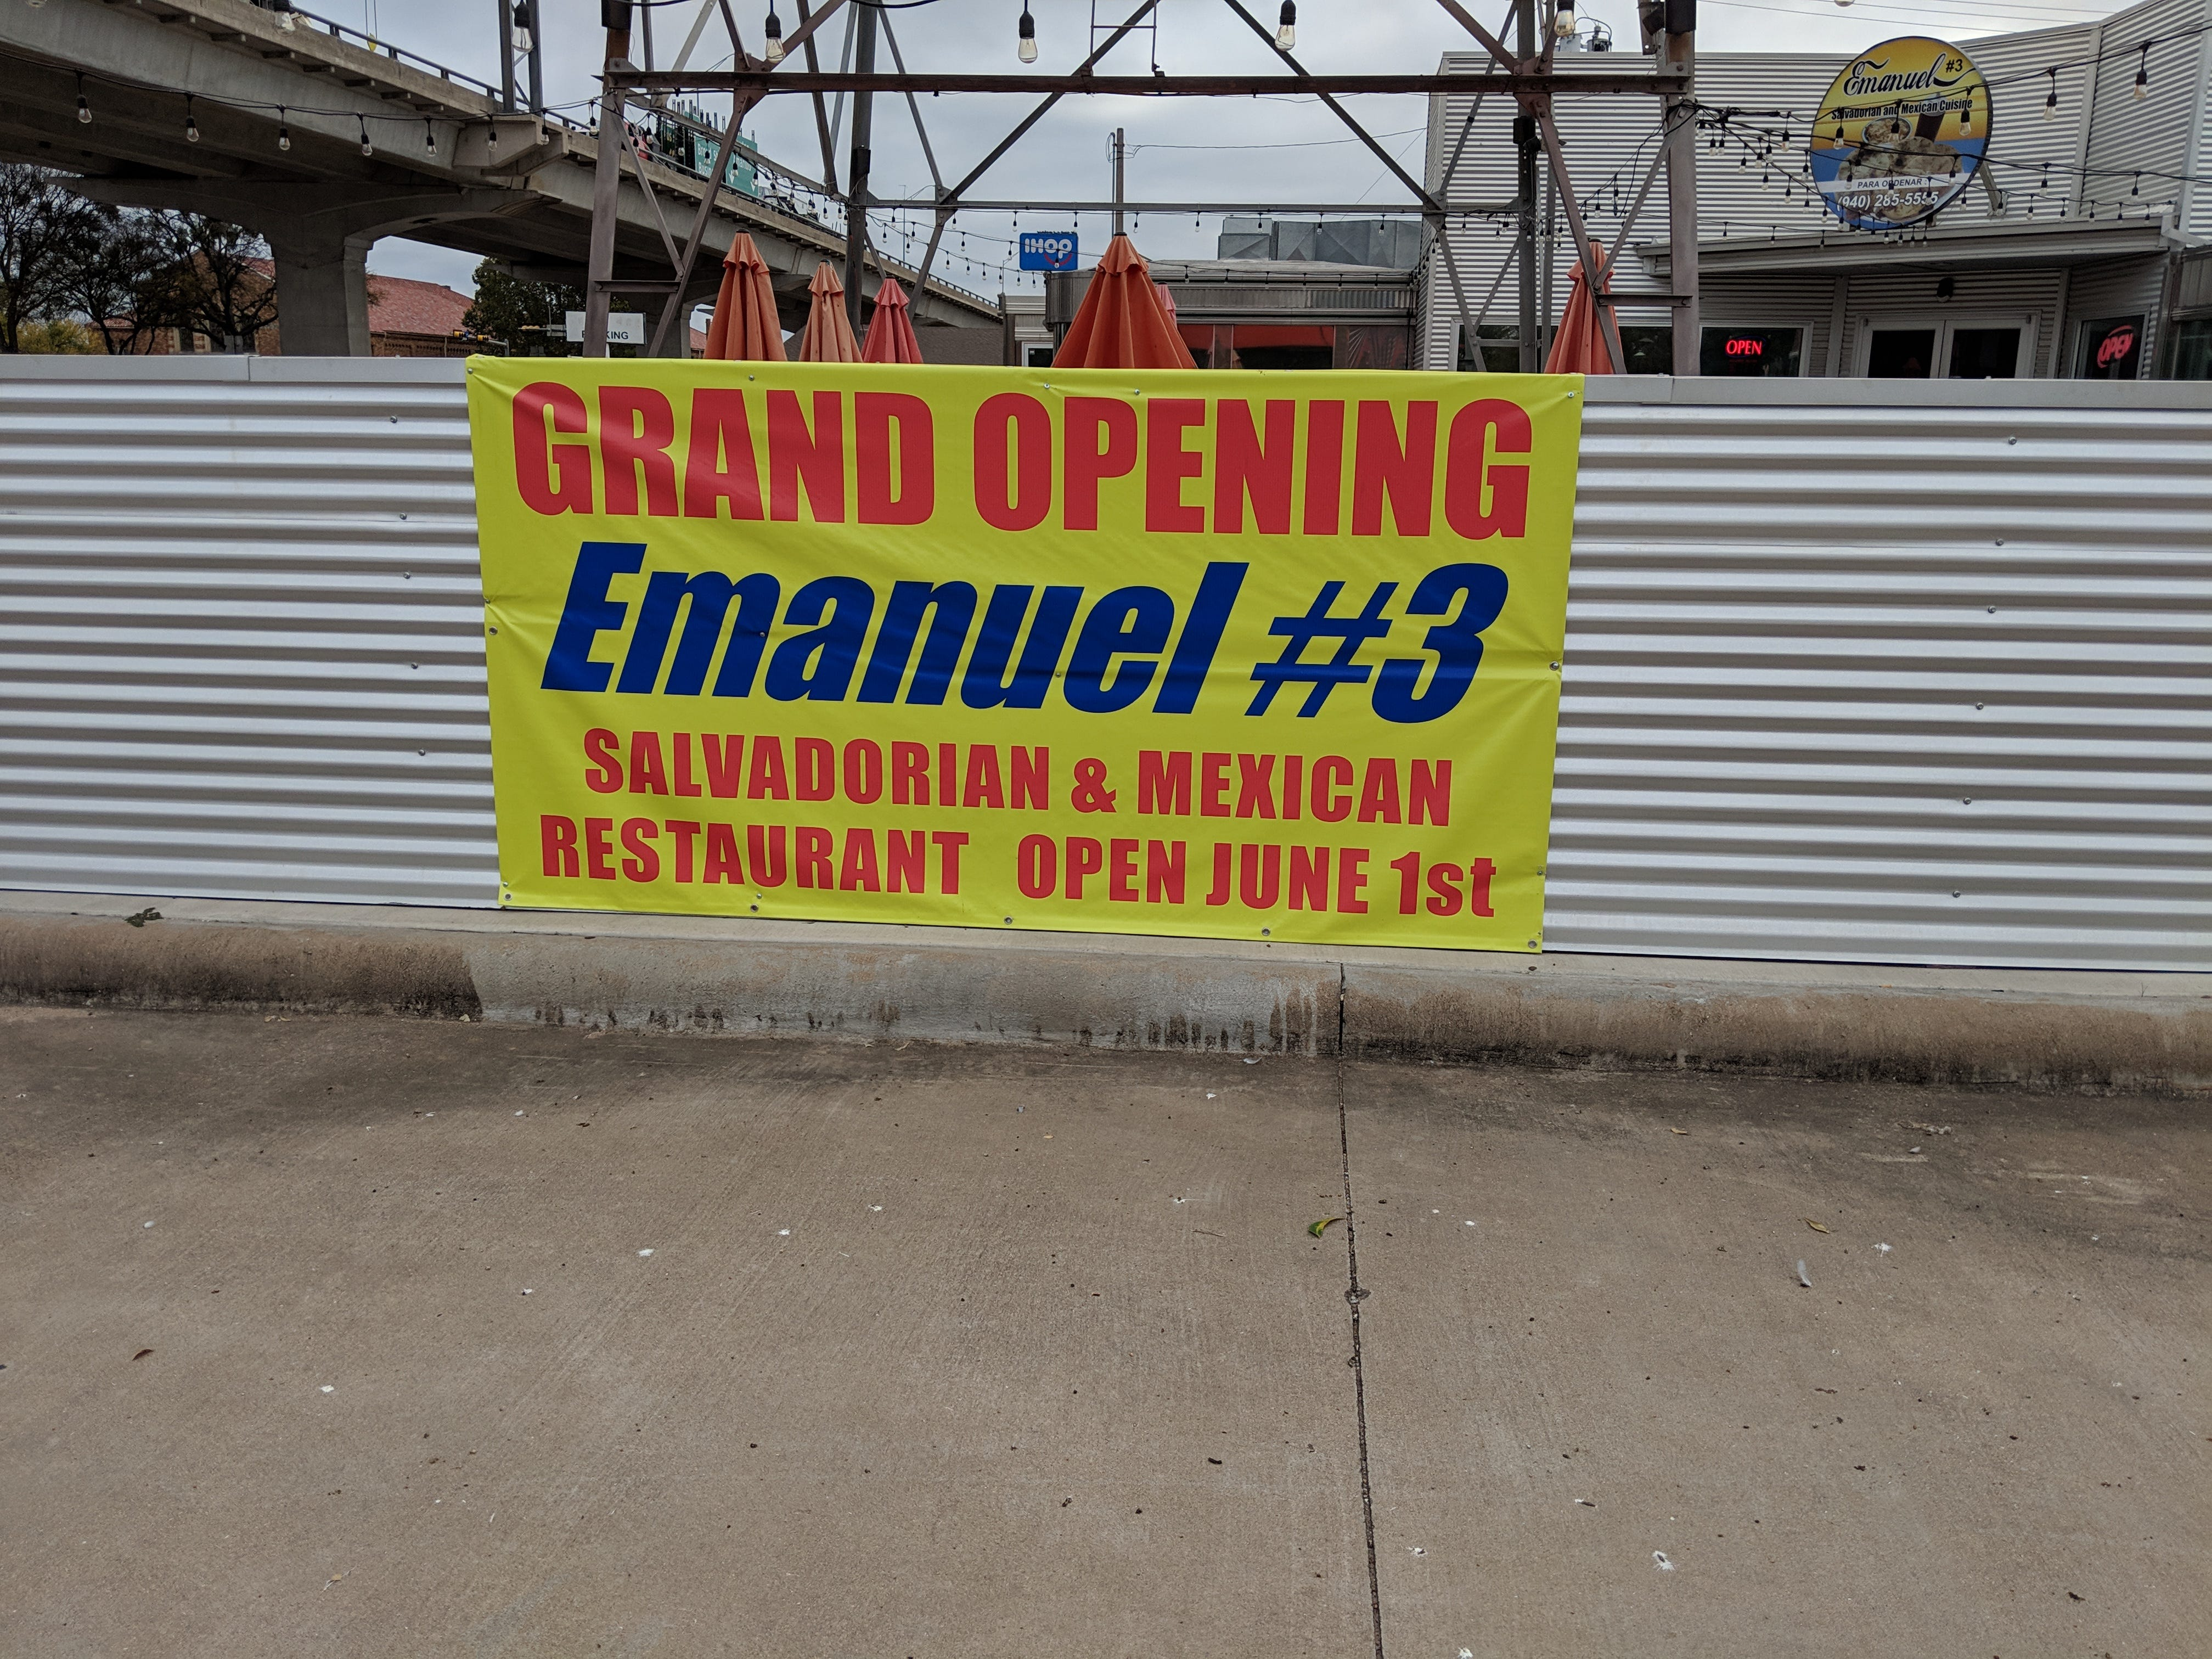 Outside Emanuel #3 Salvadorian and Mexican Restaurant at 902 Board St.